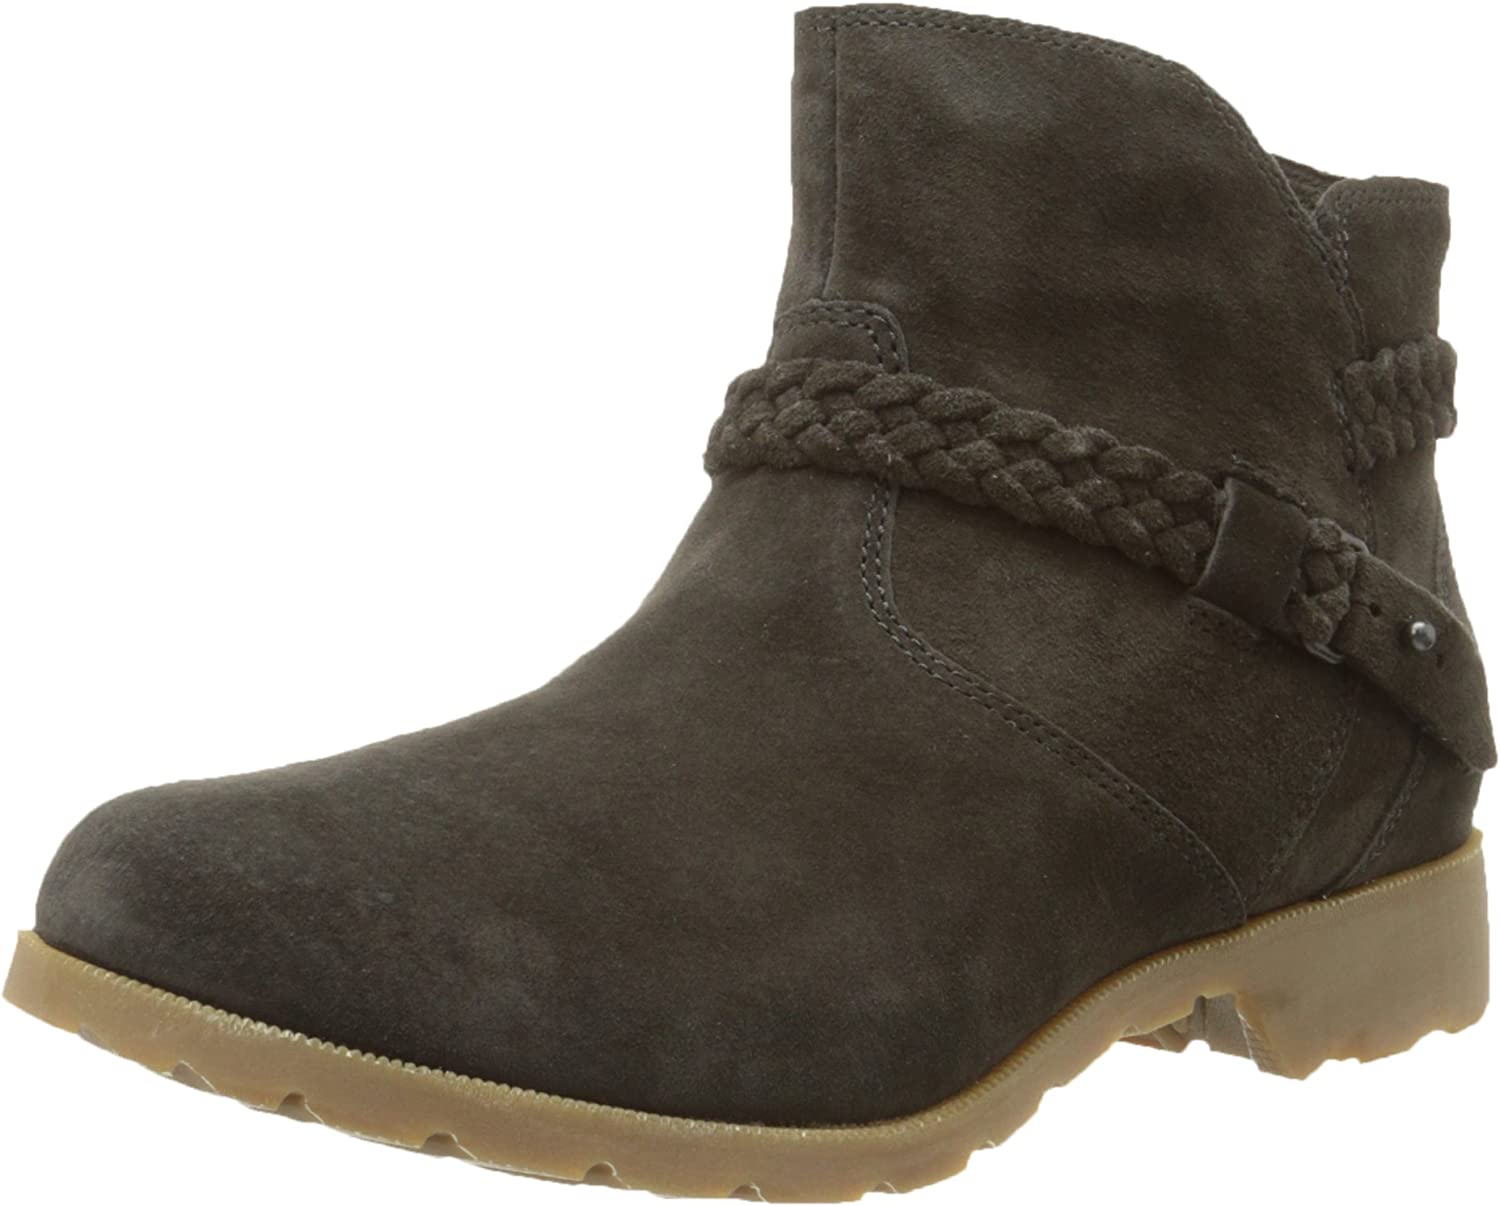 Teva Women's Delavina Suede Ankle Boot